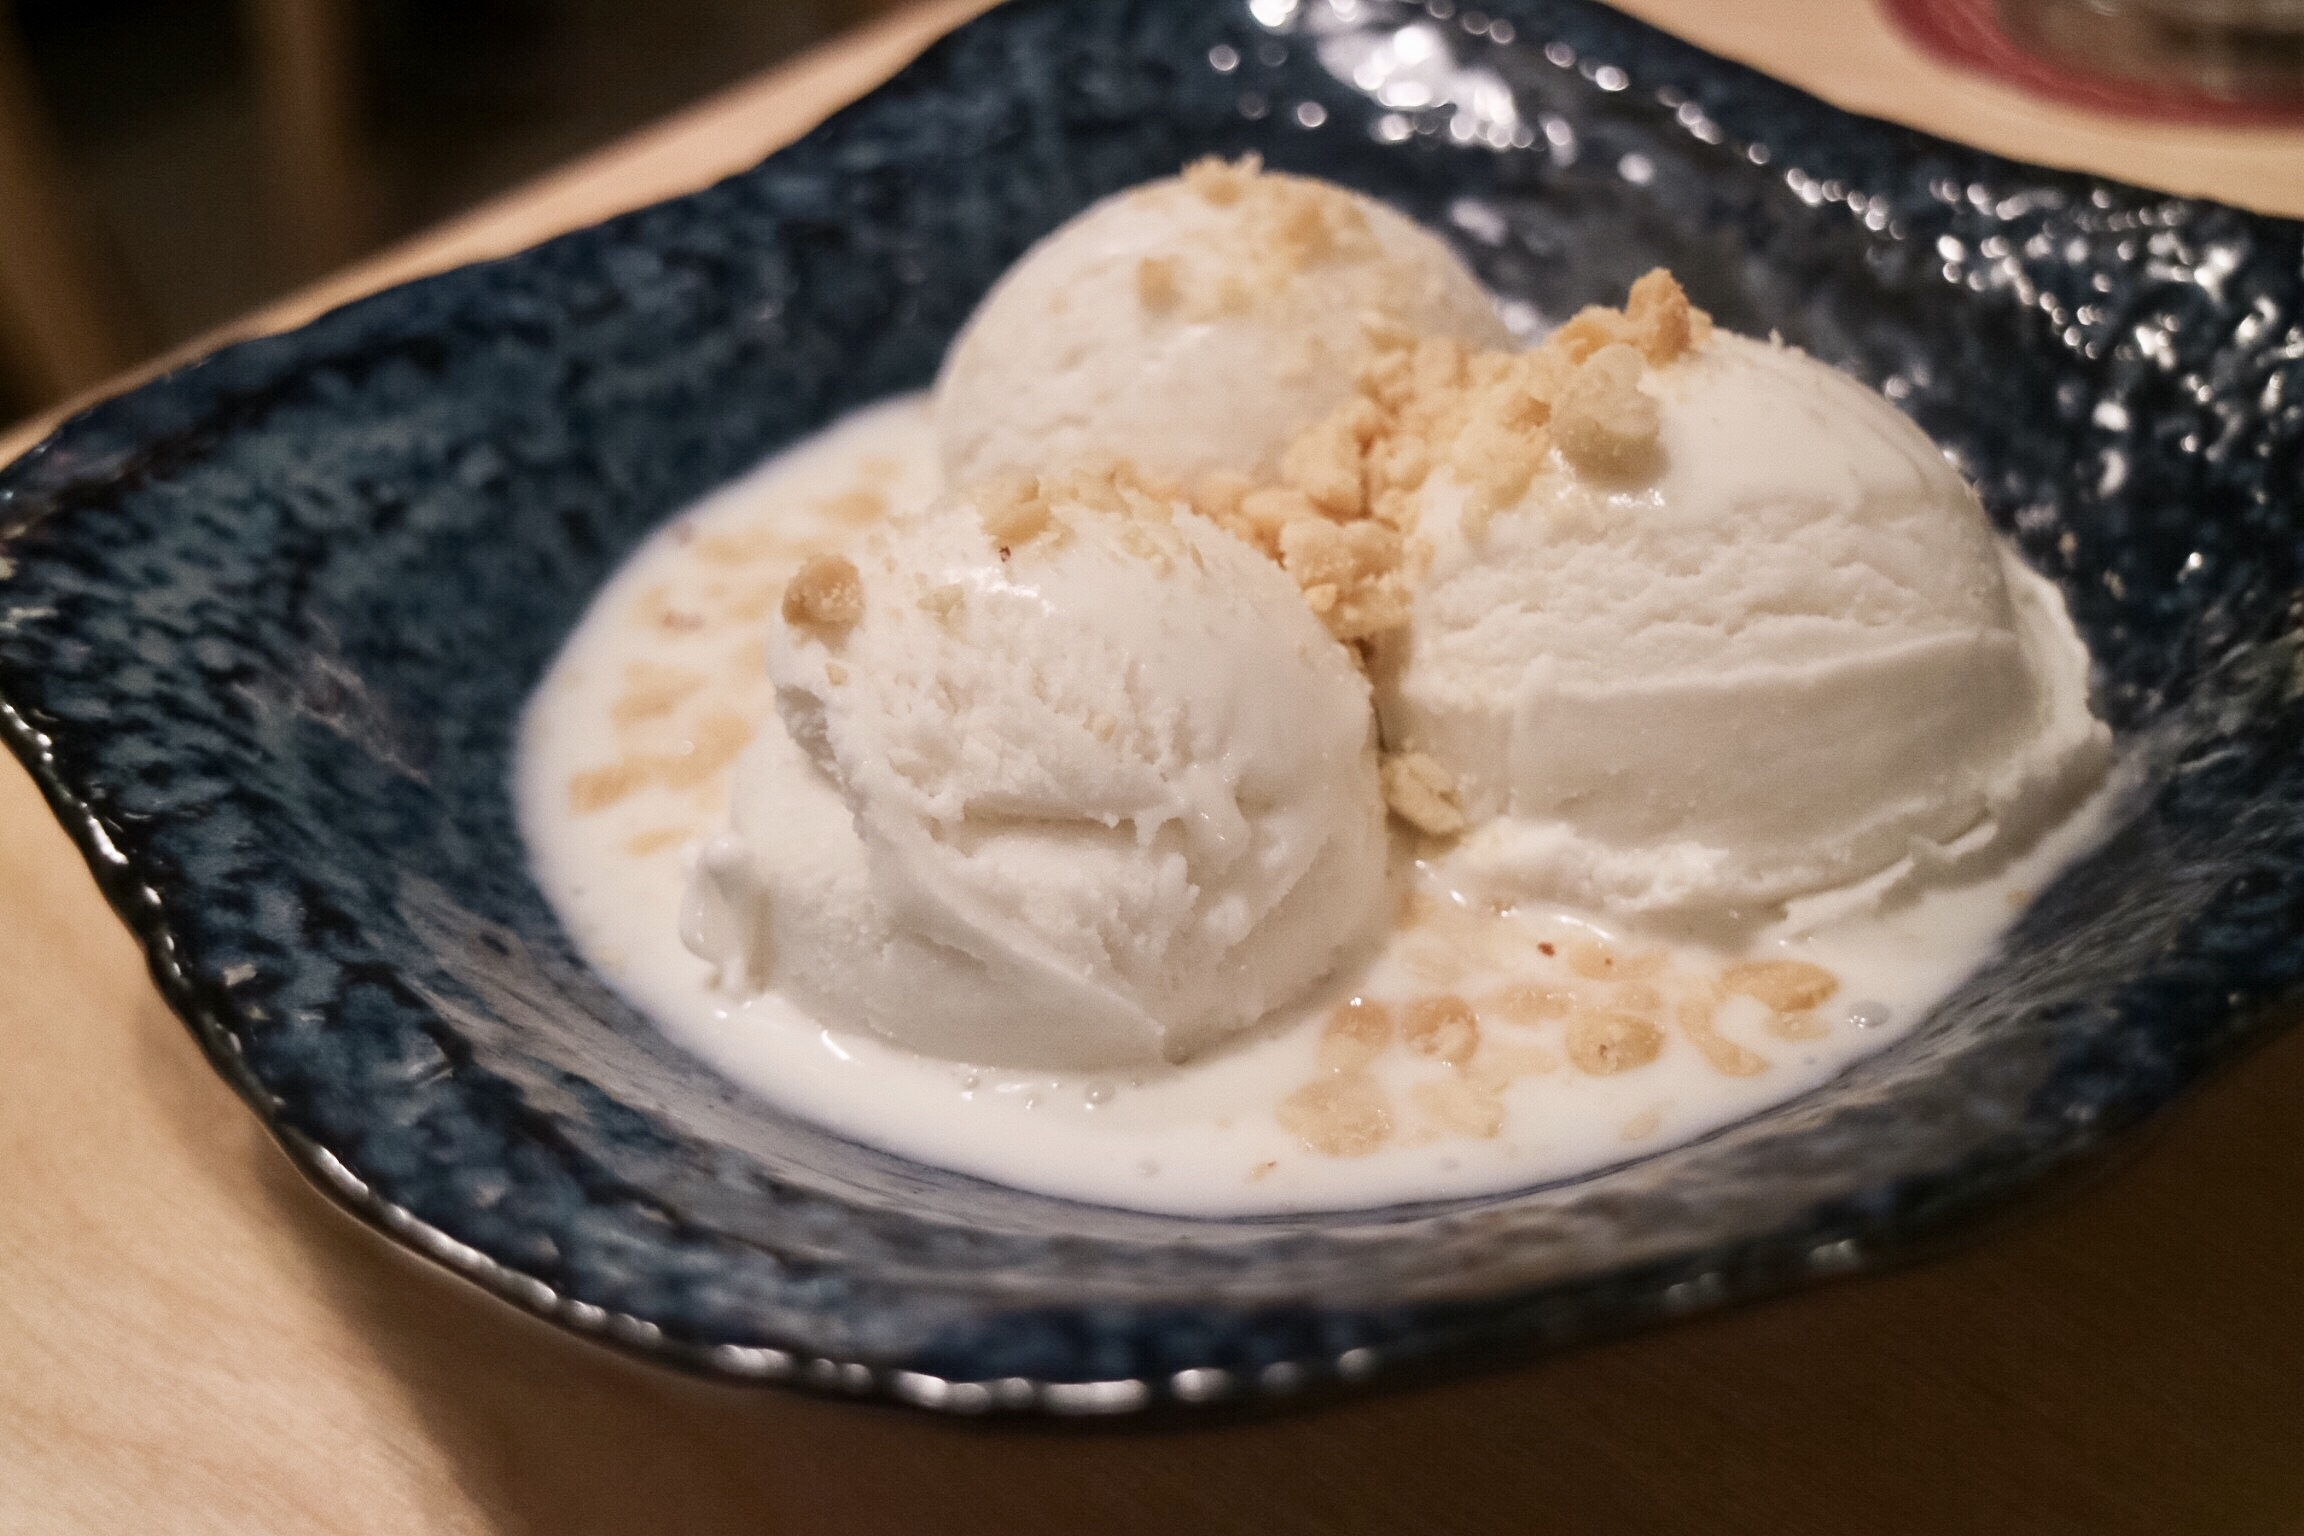 House-made Coconut Ice Cream